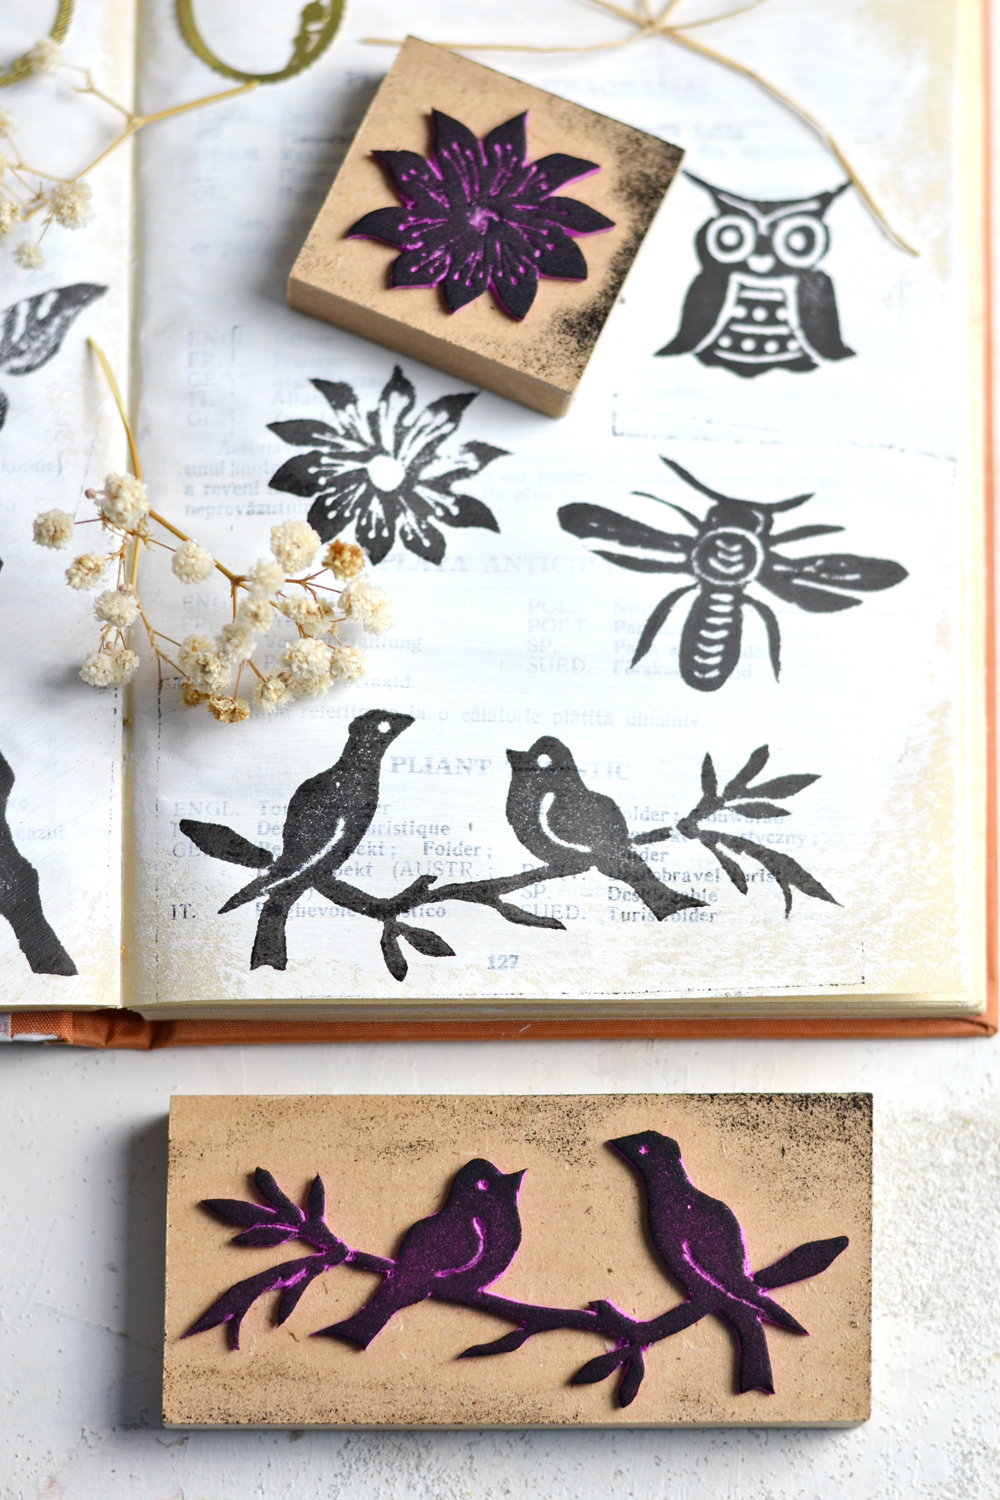 DIY Vintage Foam Stamps - learn how to easily make your own stamps using your favorite images, that can be used on so many of your creative projects!